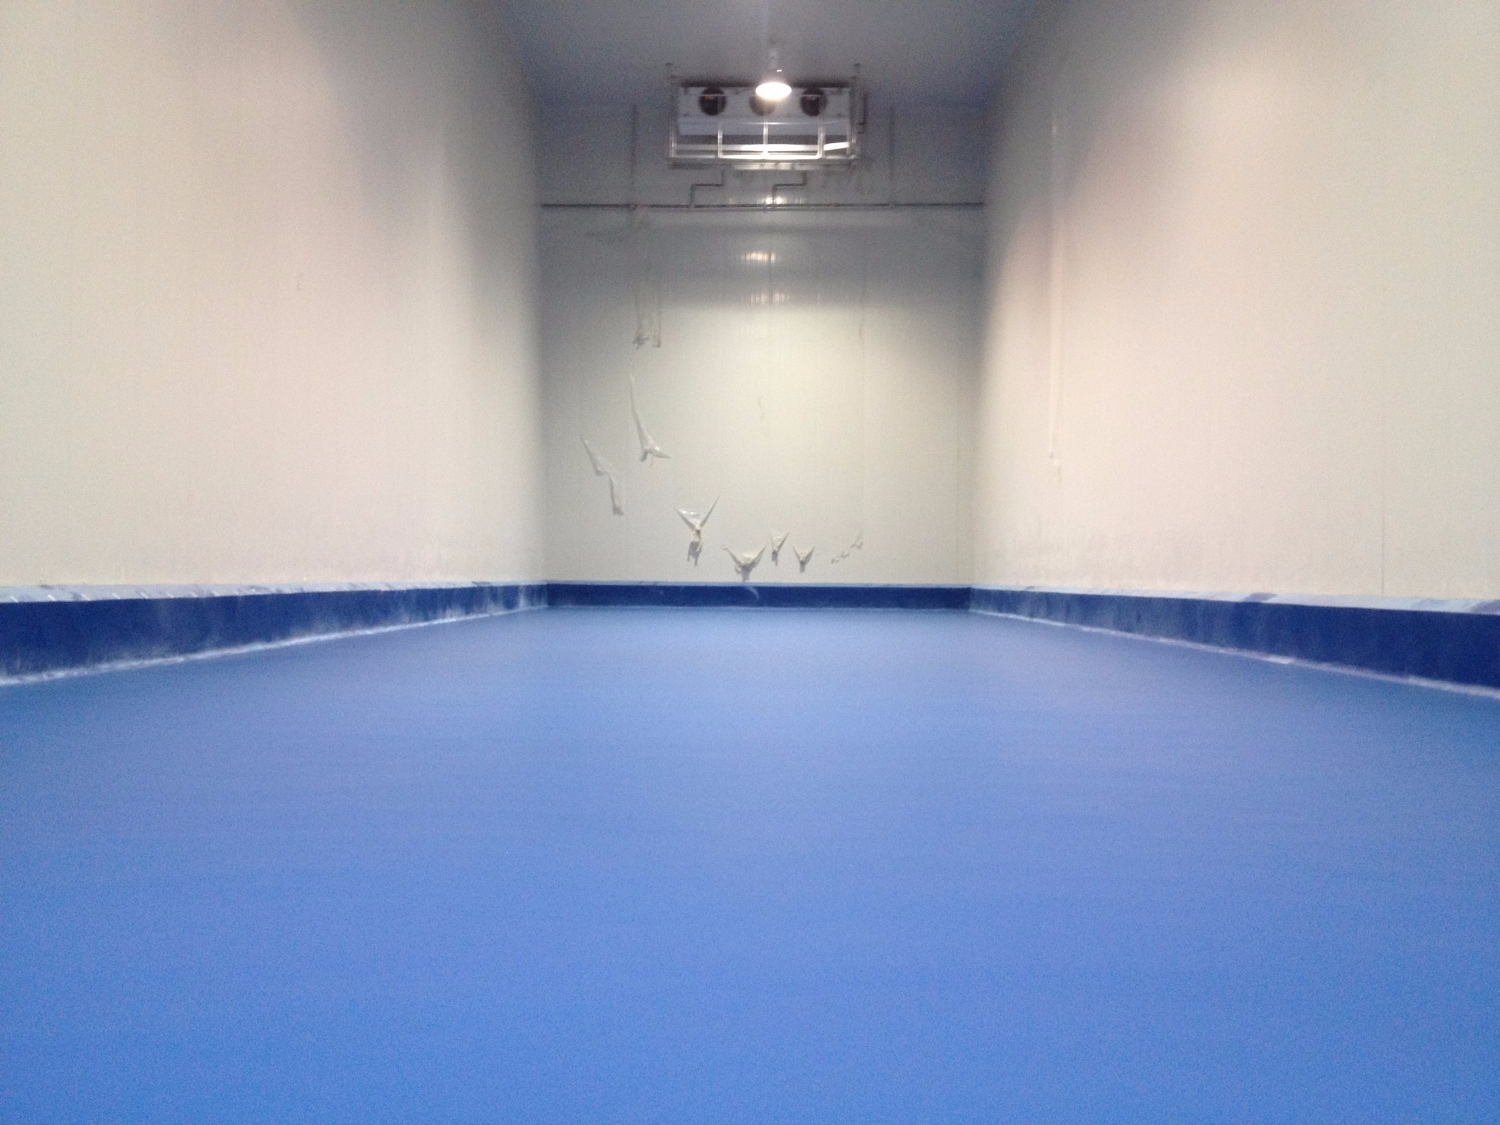 The PU (Polyurethane) Flooring